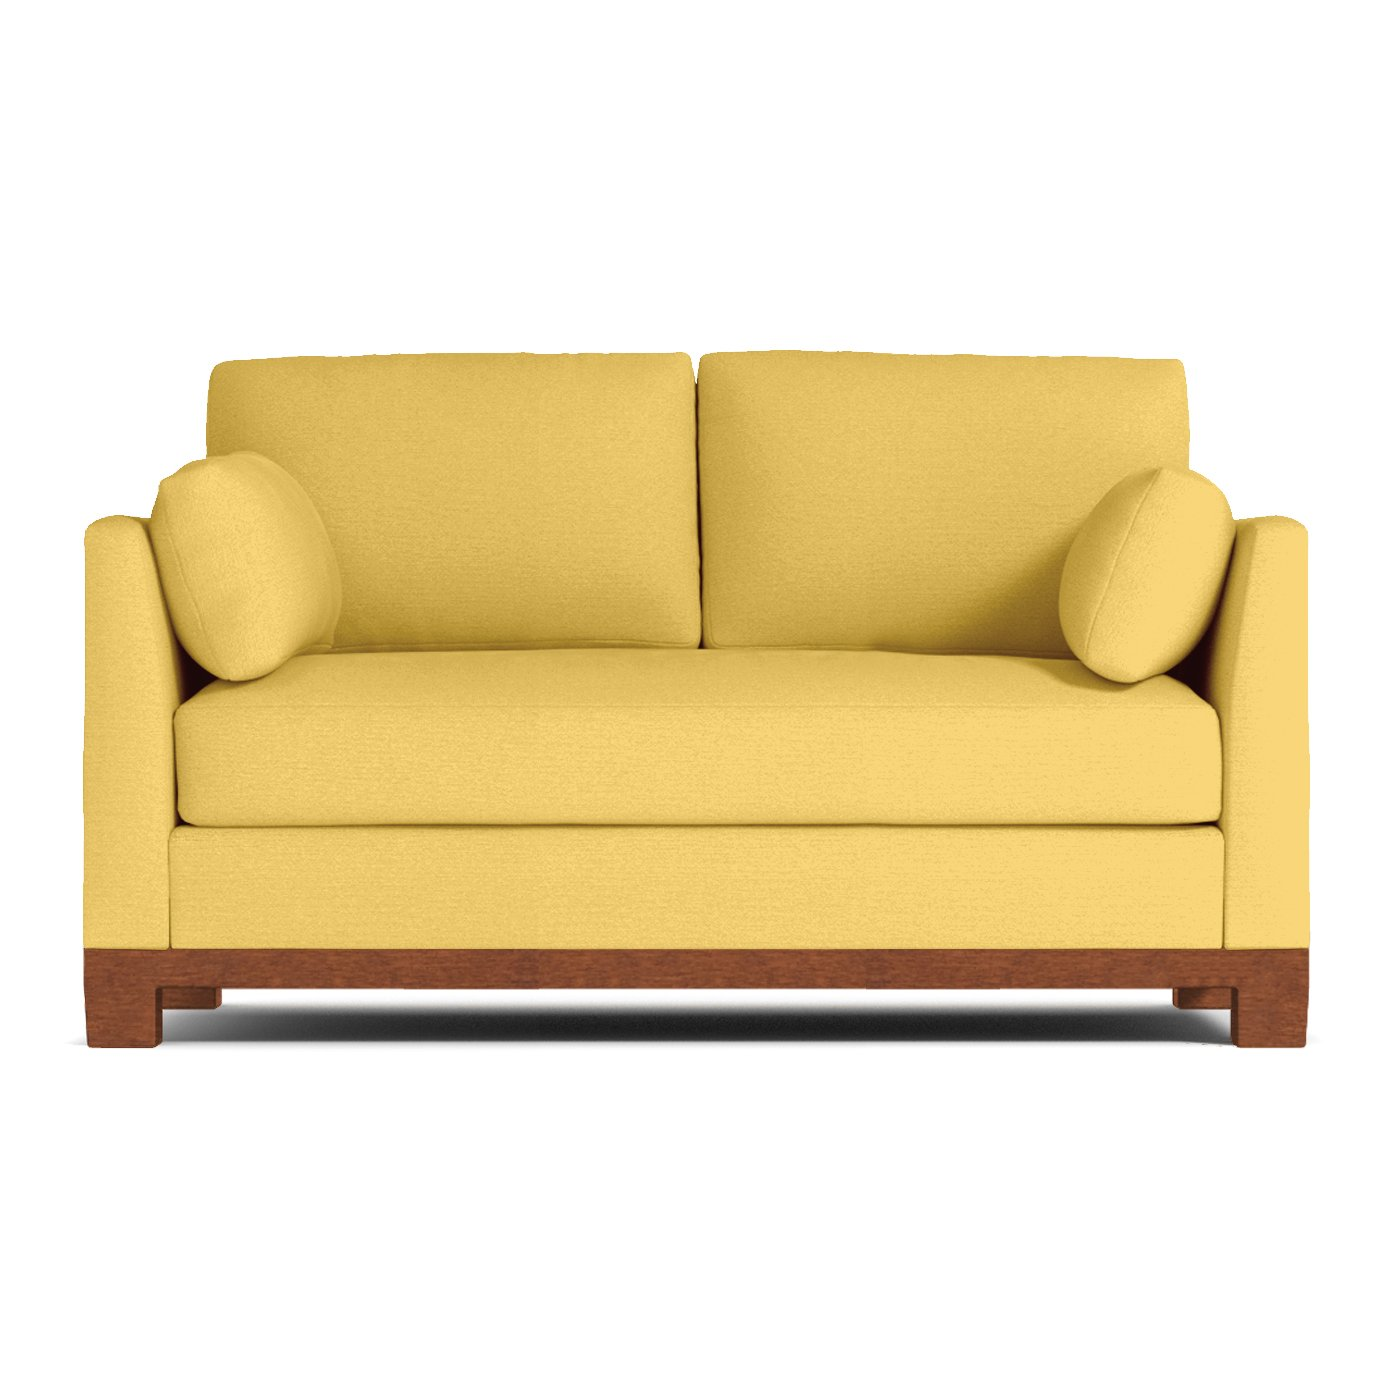 Avalon Apartment Size Sleeper Sofa